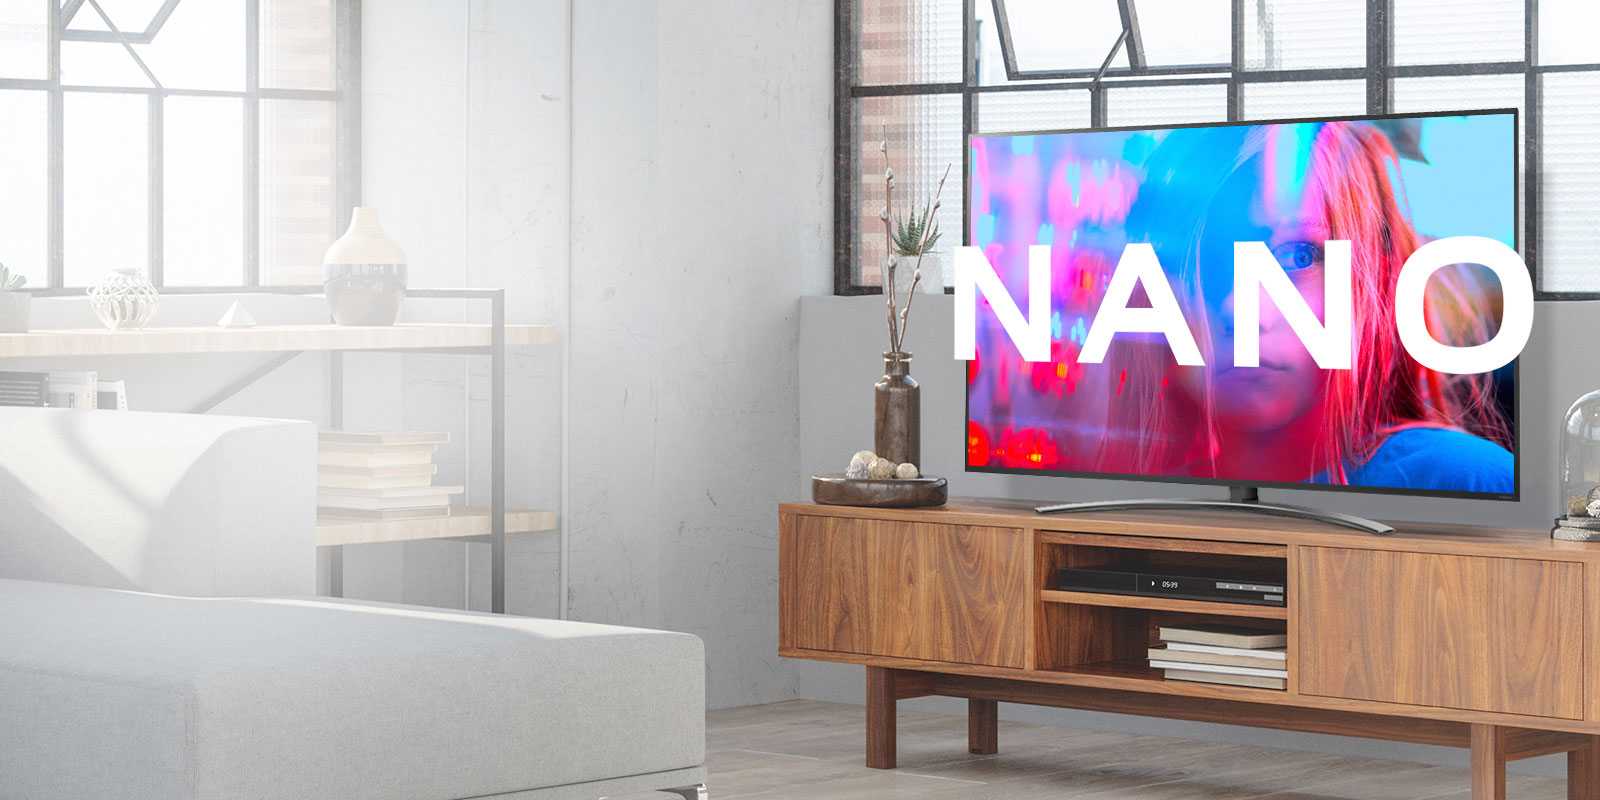 Bring Home the LG NanoCell TV SM86001